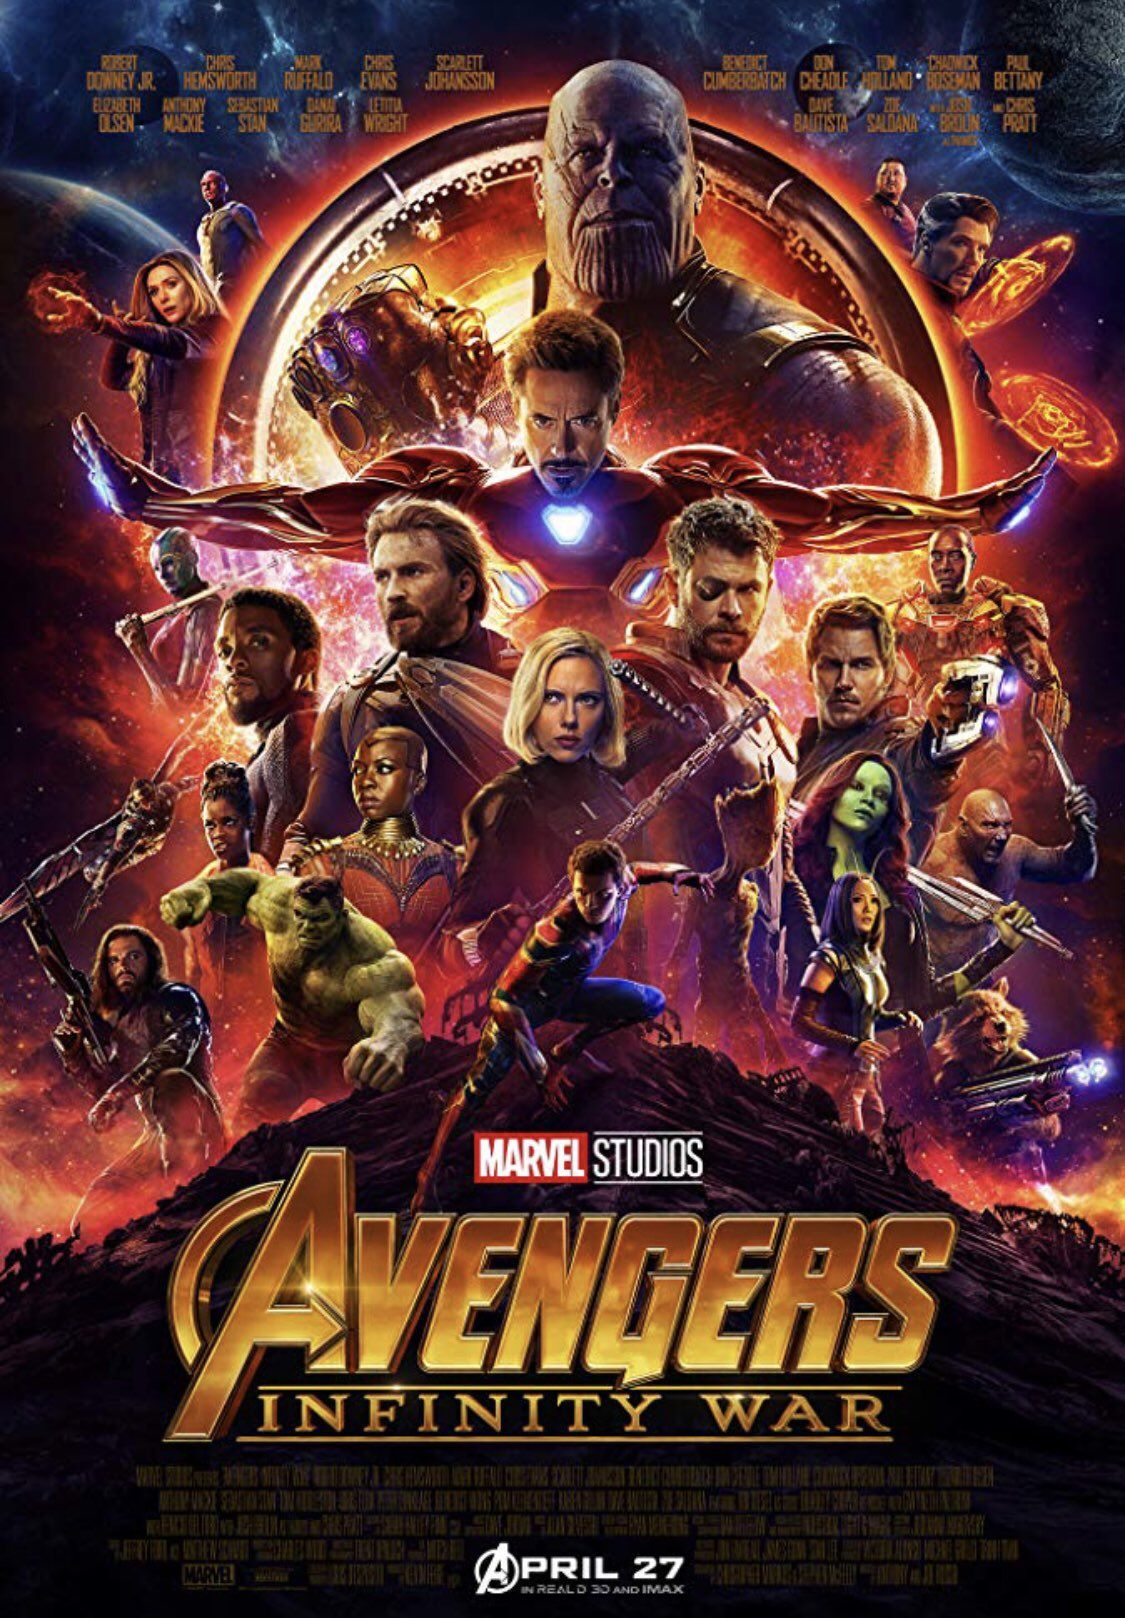 Avengers Infinity War 2018 Download 1080p Hindi Dubbed Dual Audio Marvel Movie Posters Avengers Infinity War Infinity War